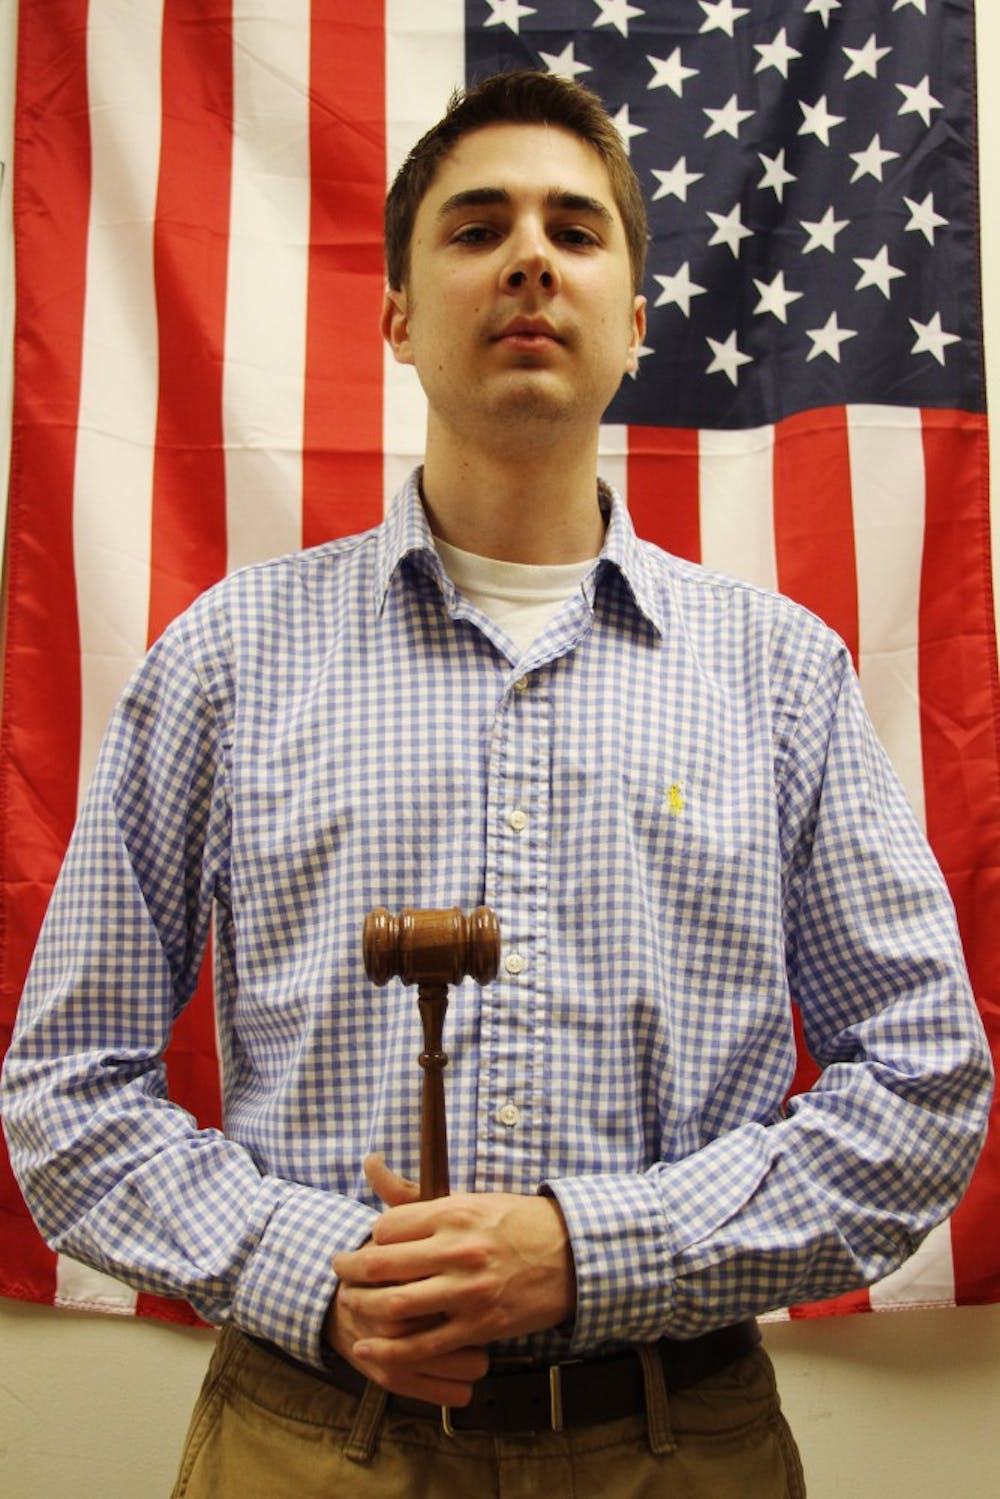 <p>Zachary De La Rosa has been actively involved in student government for several years. Before becoming speaker of Student Congress, he served as speaker pro tempore.</p>